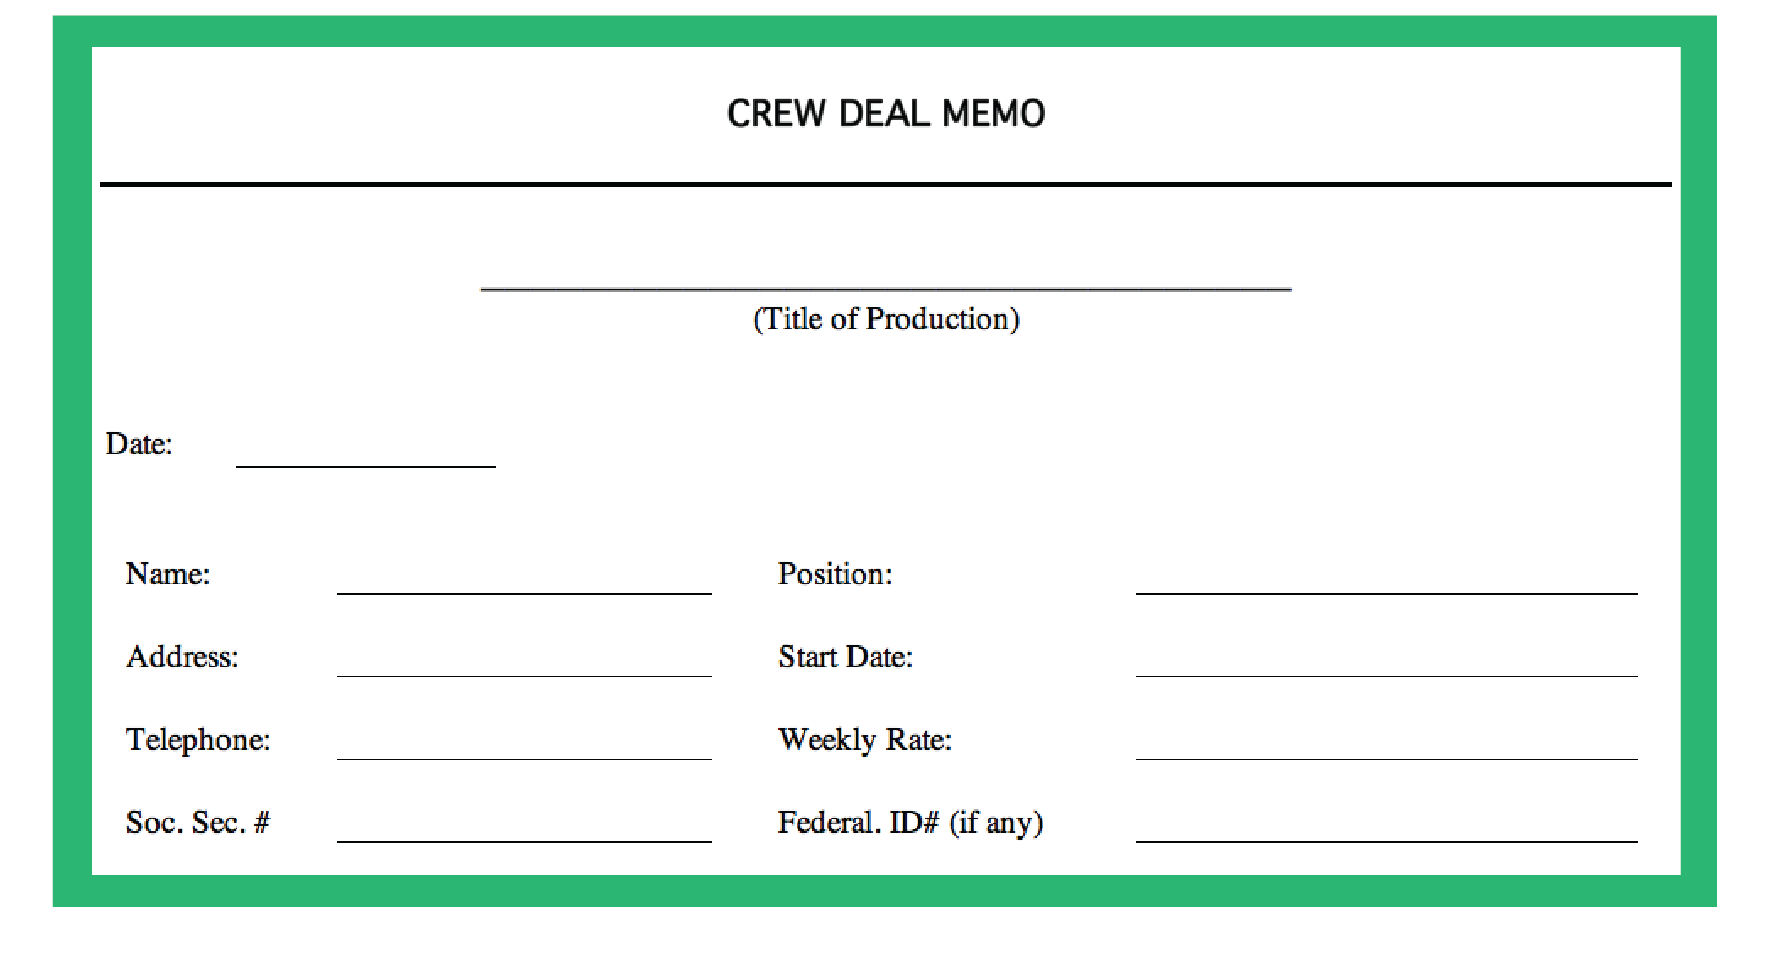 Starting the Crew Deal Memo